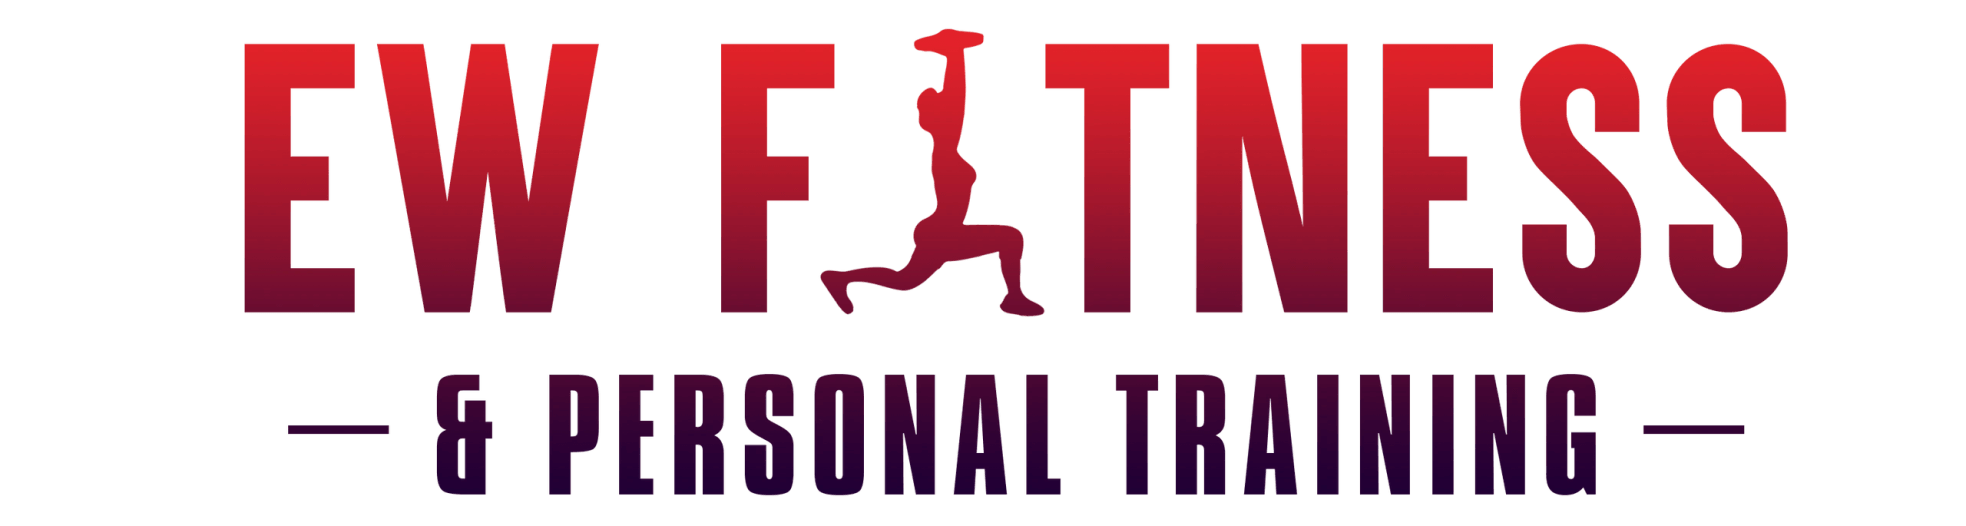 EW Fitness & Personal Training